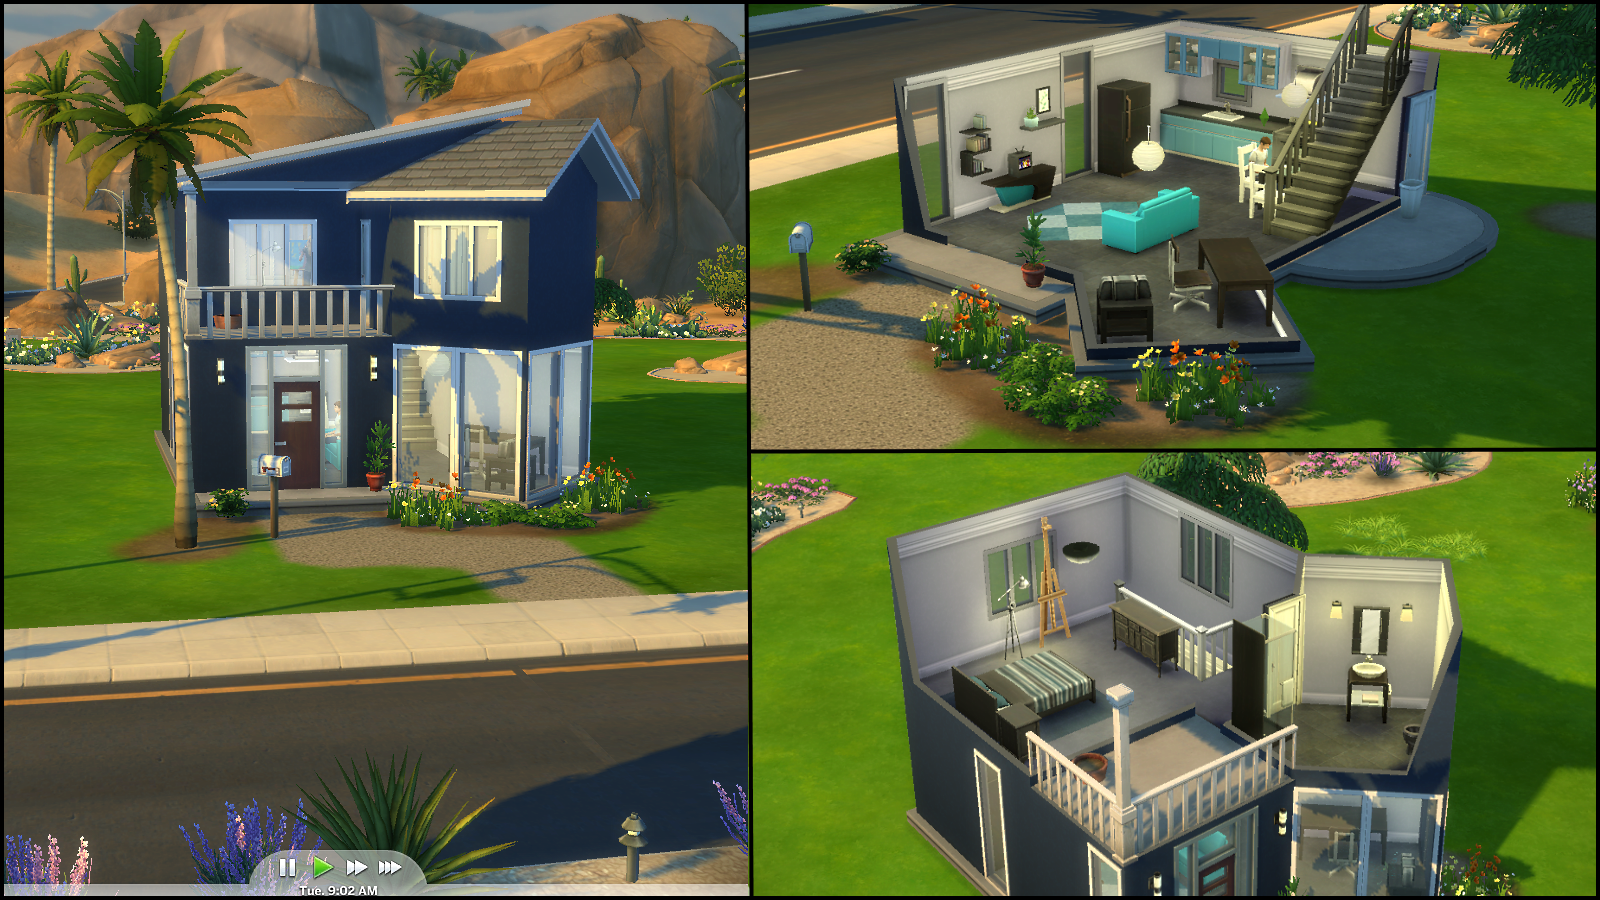 The sims 4 gallery spotlight simsvip page 9 for Sims 4 house plans